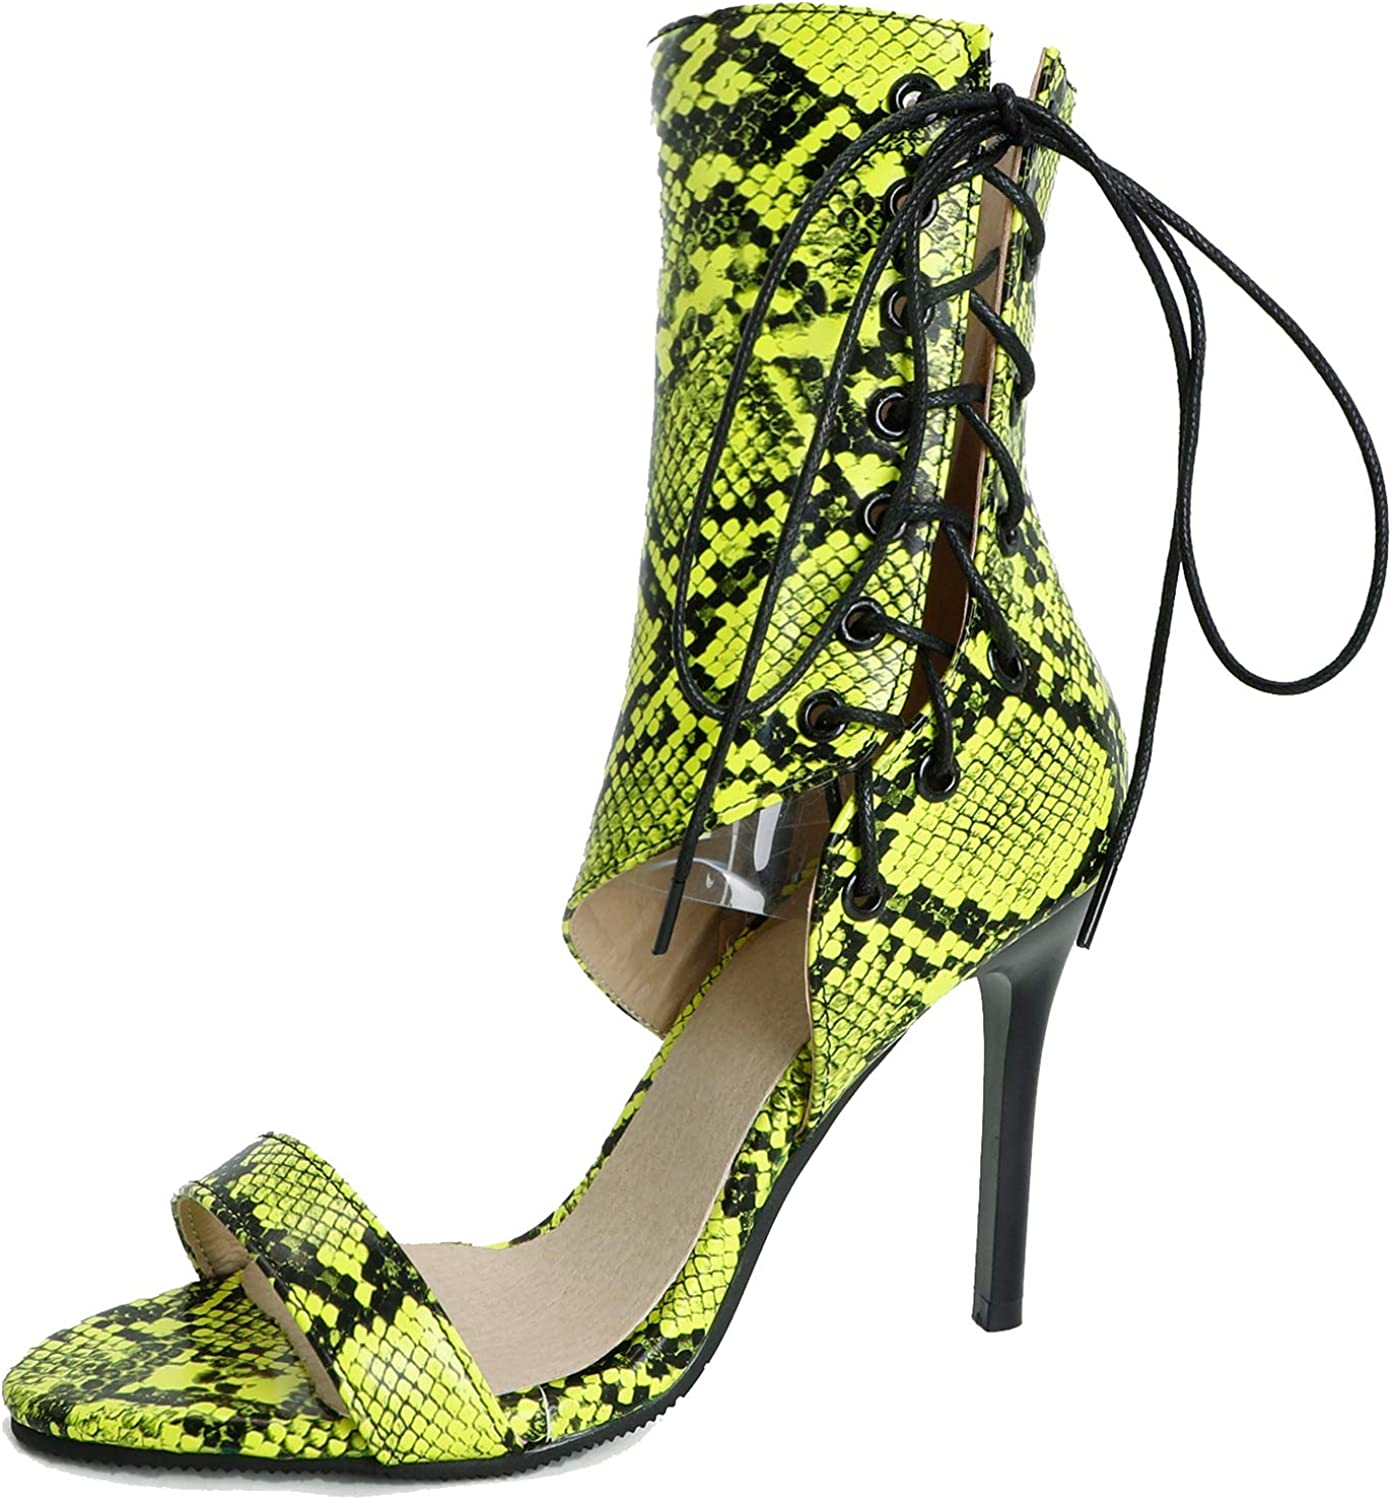 LaShoes Women safety Peep-Toe Sandals with Zipper Lace-up Latest item and